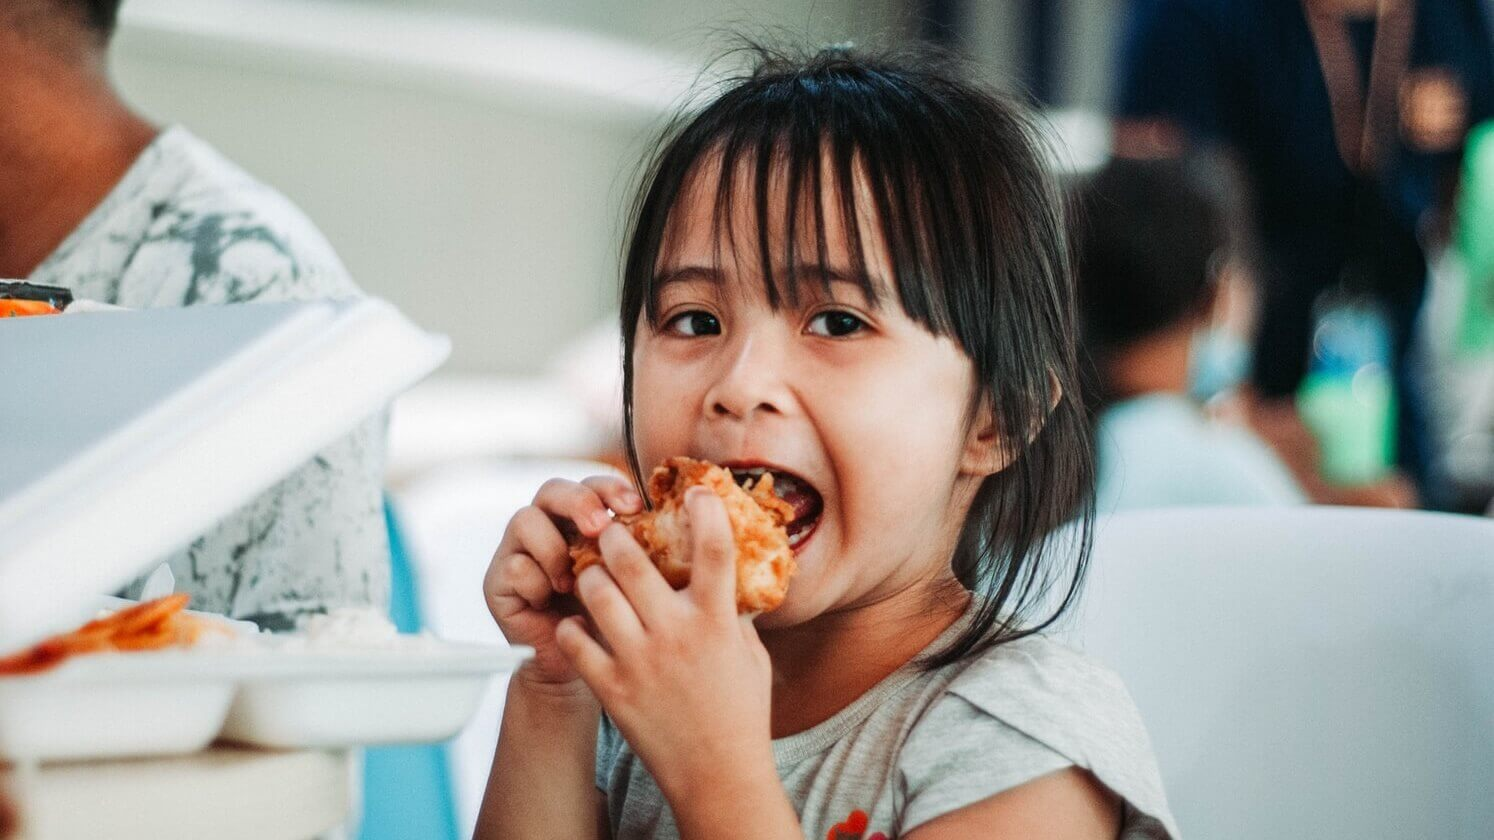 Copenhagen Just Lifted a Ban on Vegan Lunch At Daycares